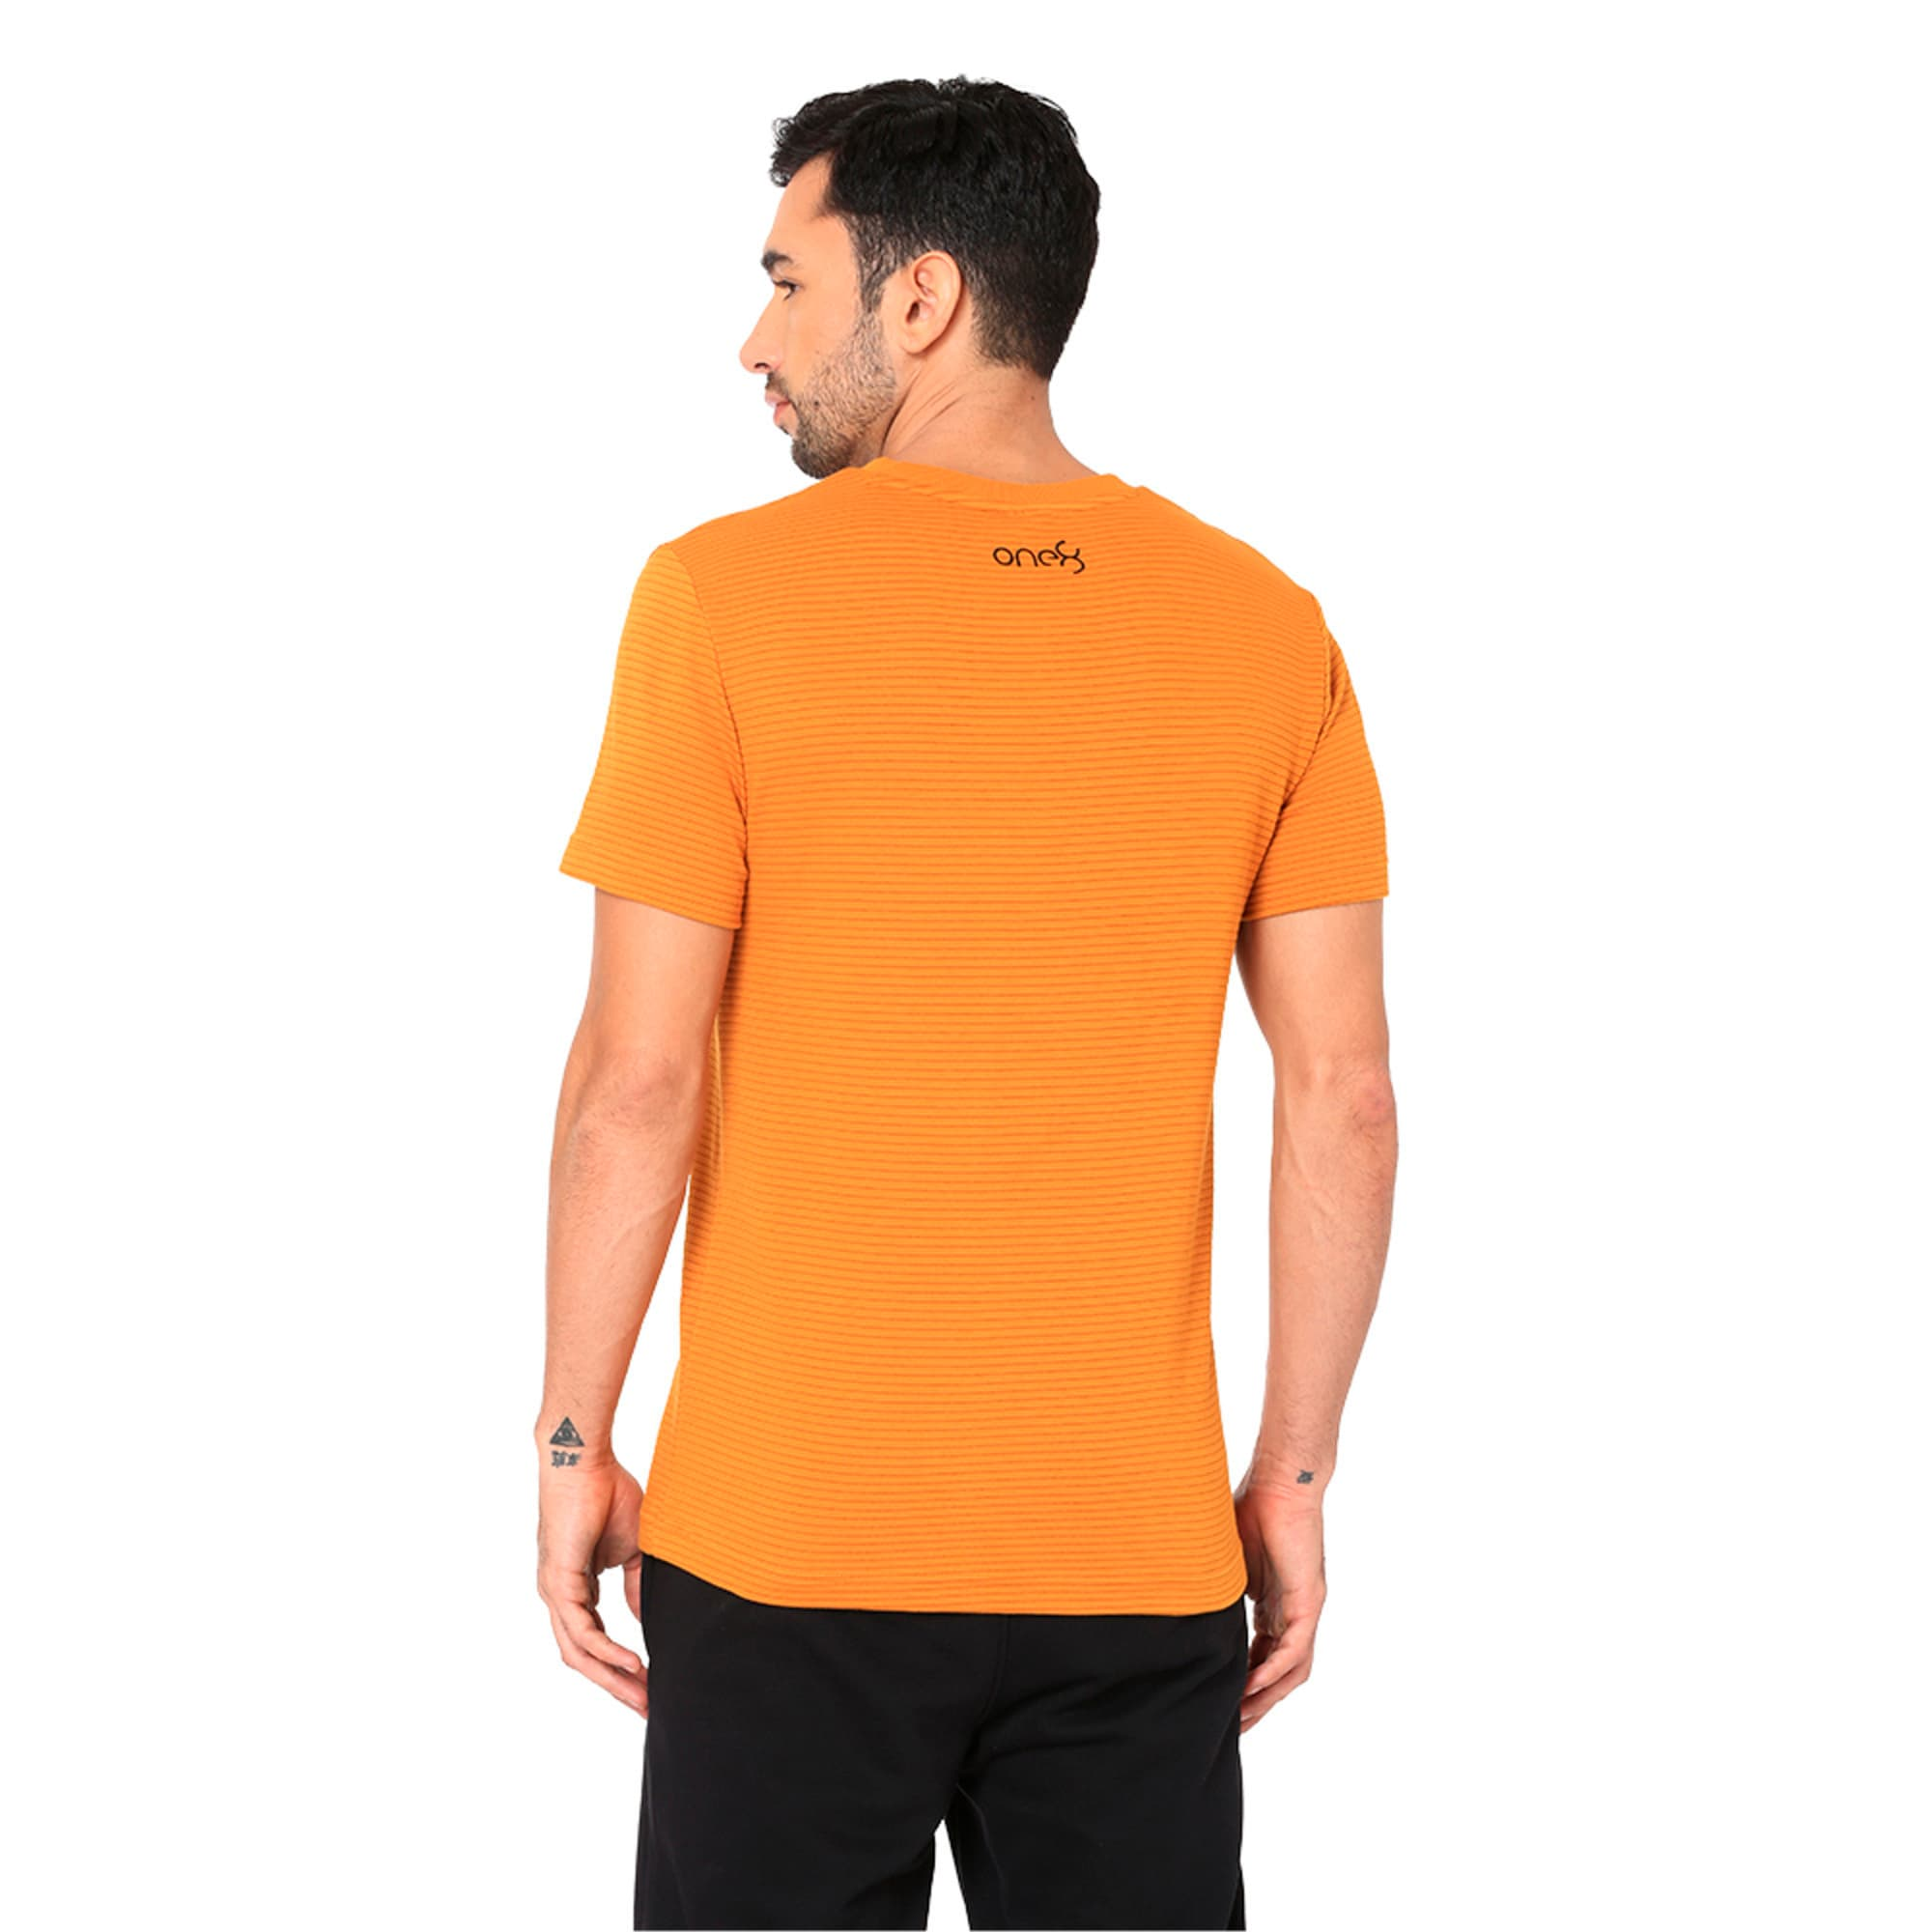 Thumbnail 5 of One8 VK Men's Tee, Buckthorn Brown, medium-IND